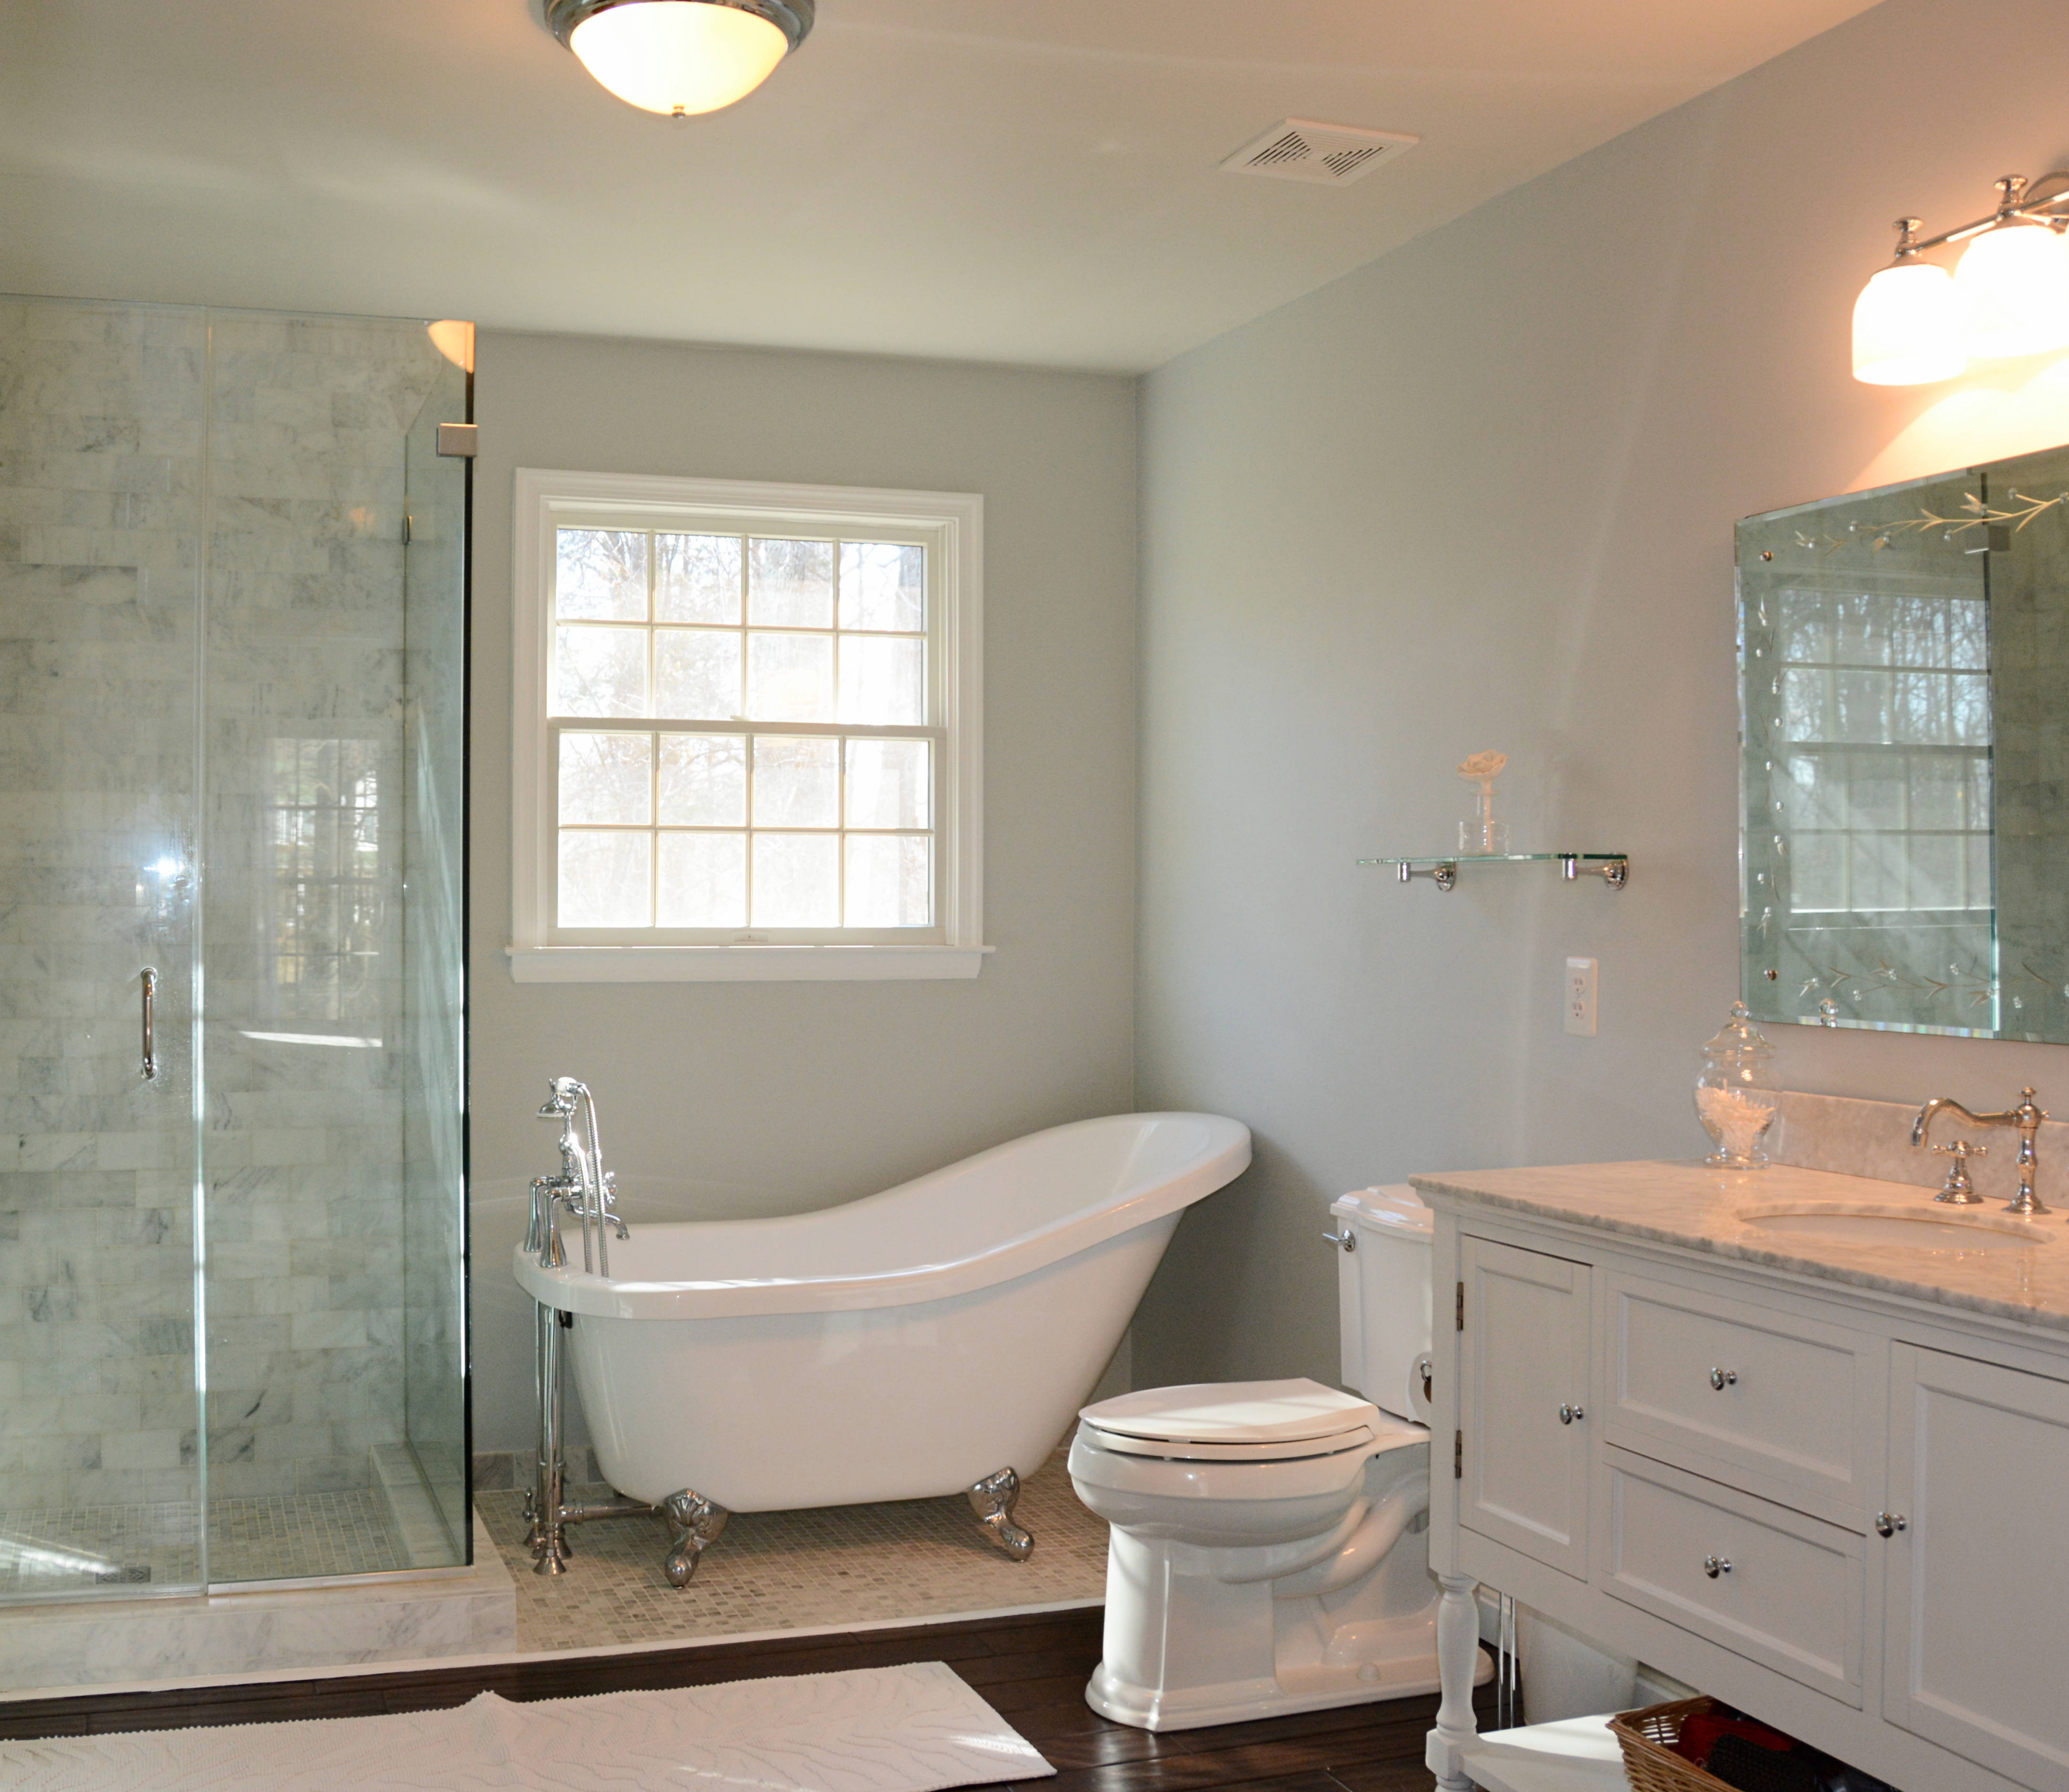 La Plata MD Homes Master Suite Amazing Bathroom Remodel With Claw Foot Tub Marble Shower Frameless Door Enclosure And